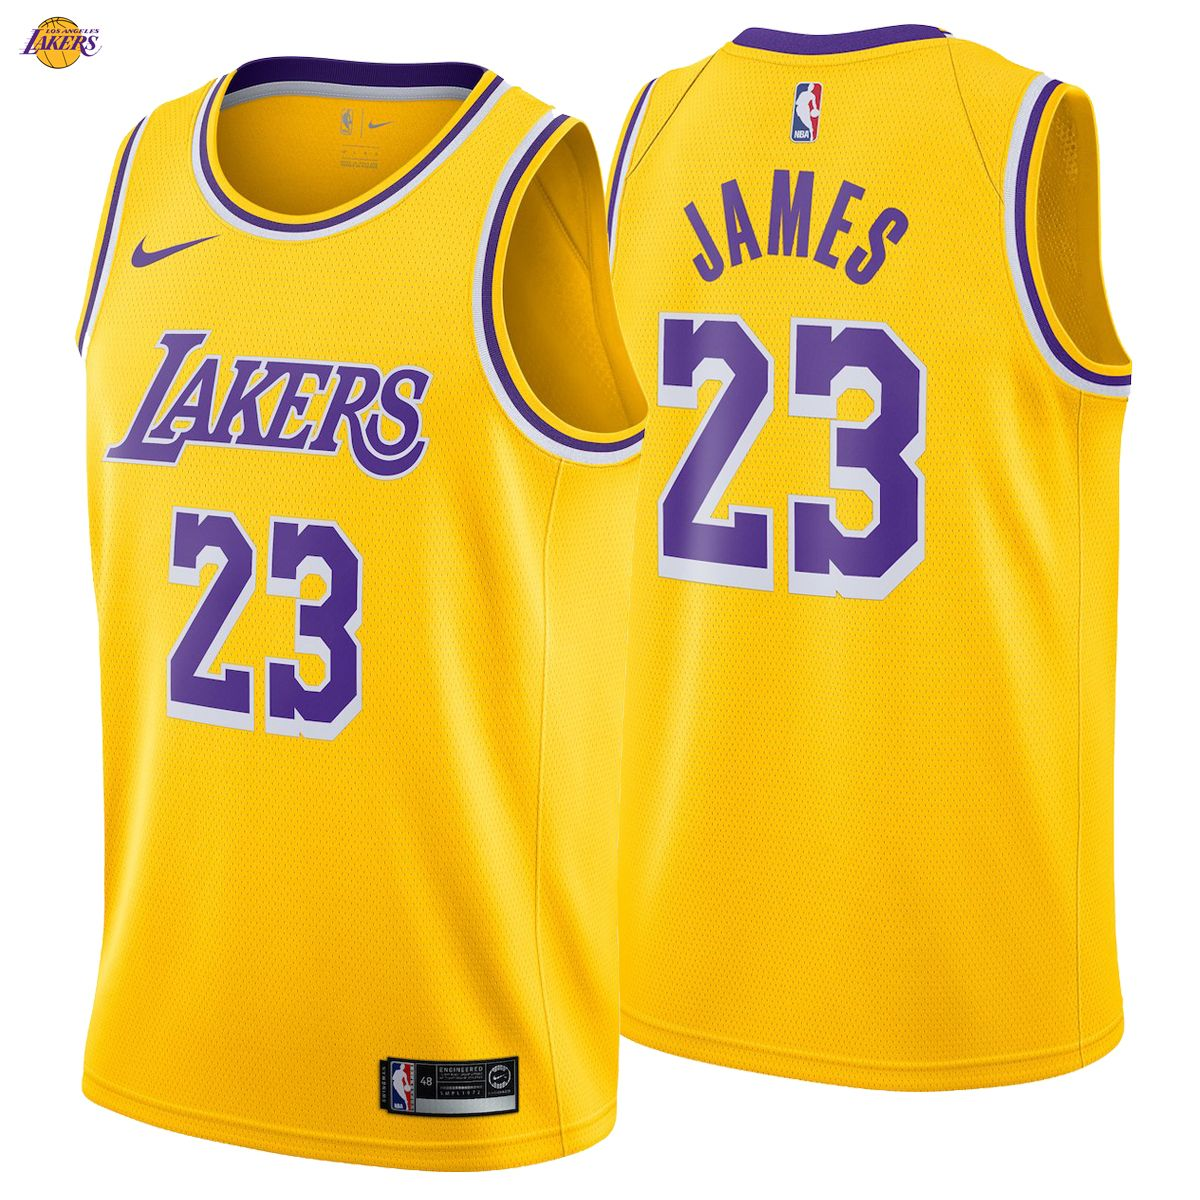 0d3a938e5d2 LeBron James 23 Los Angeles Lakers Nike Swingman Jersey 2018 19 Icon  Edition King NBA NWT Directly inspired by Nike s Authentic jersey